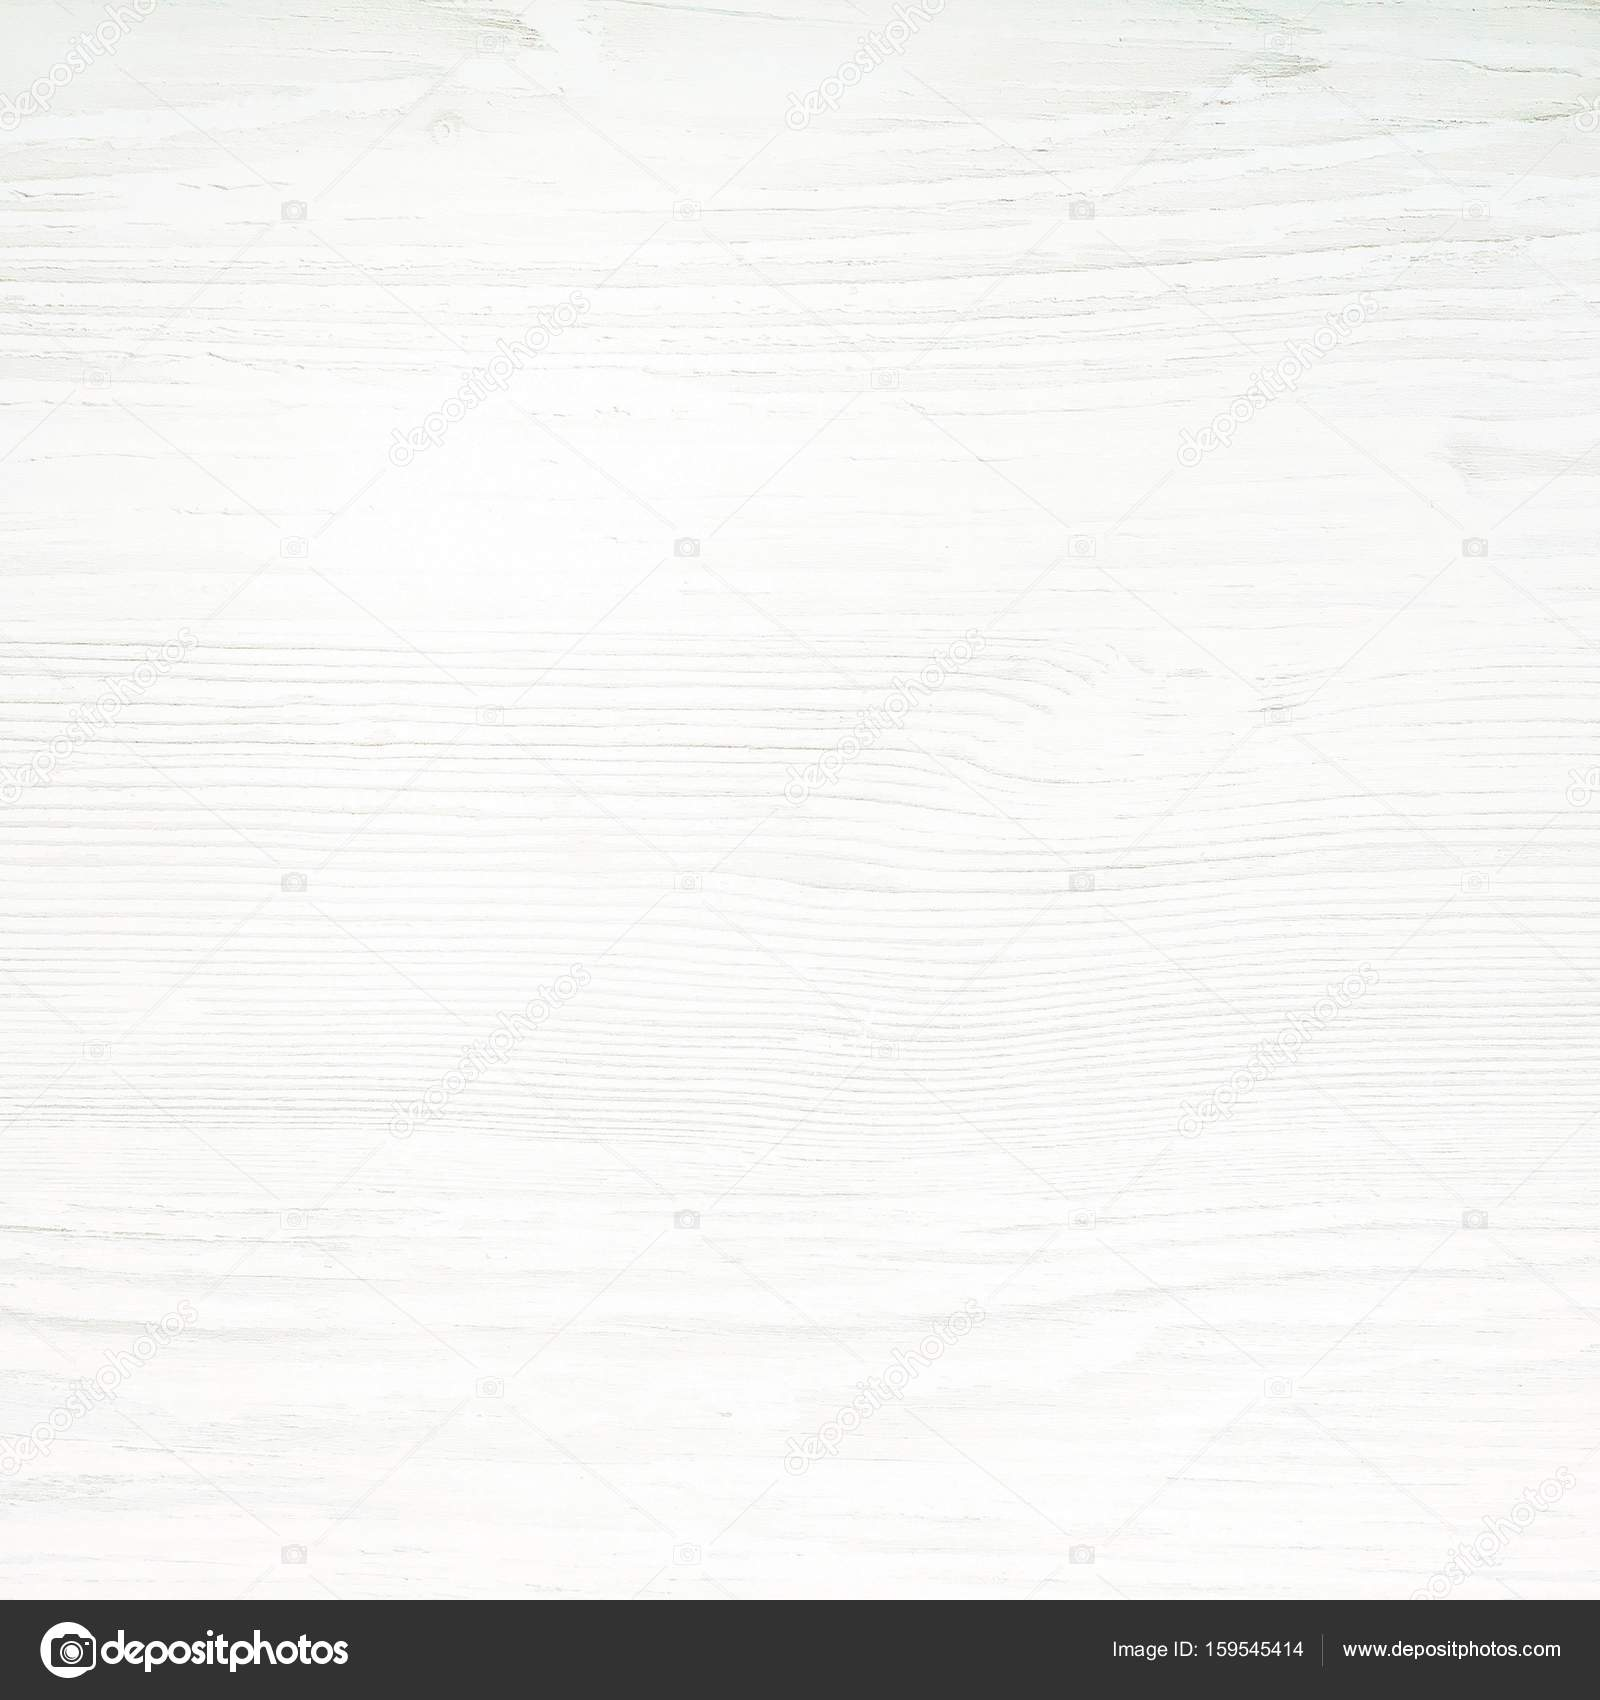 Light wood texture background surface with old natural pattern or